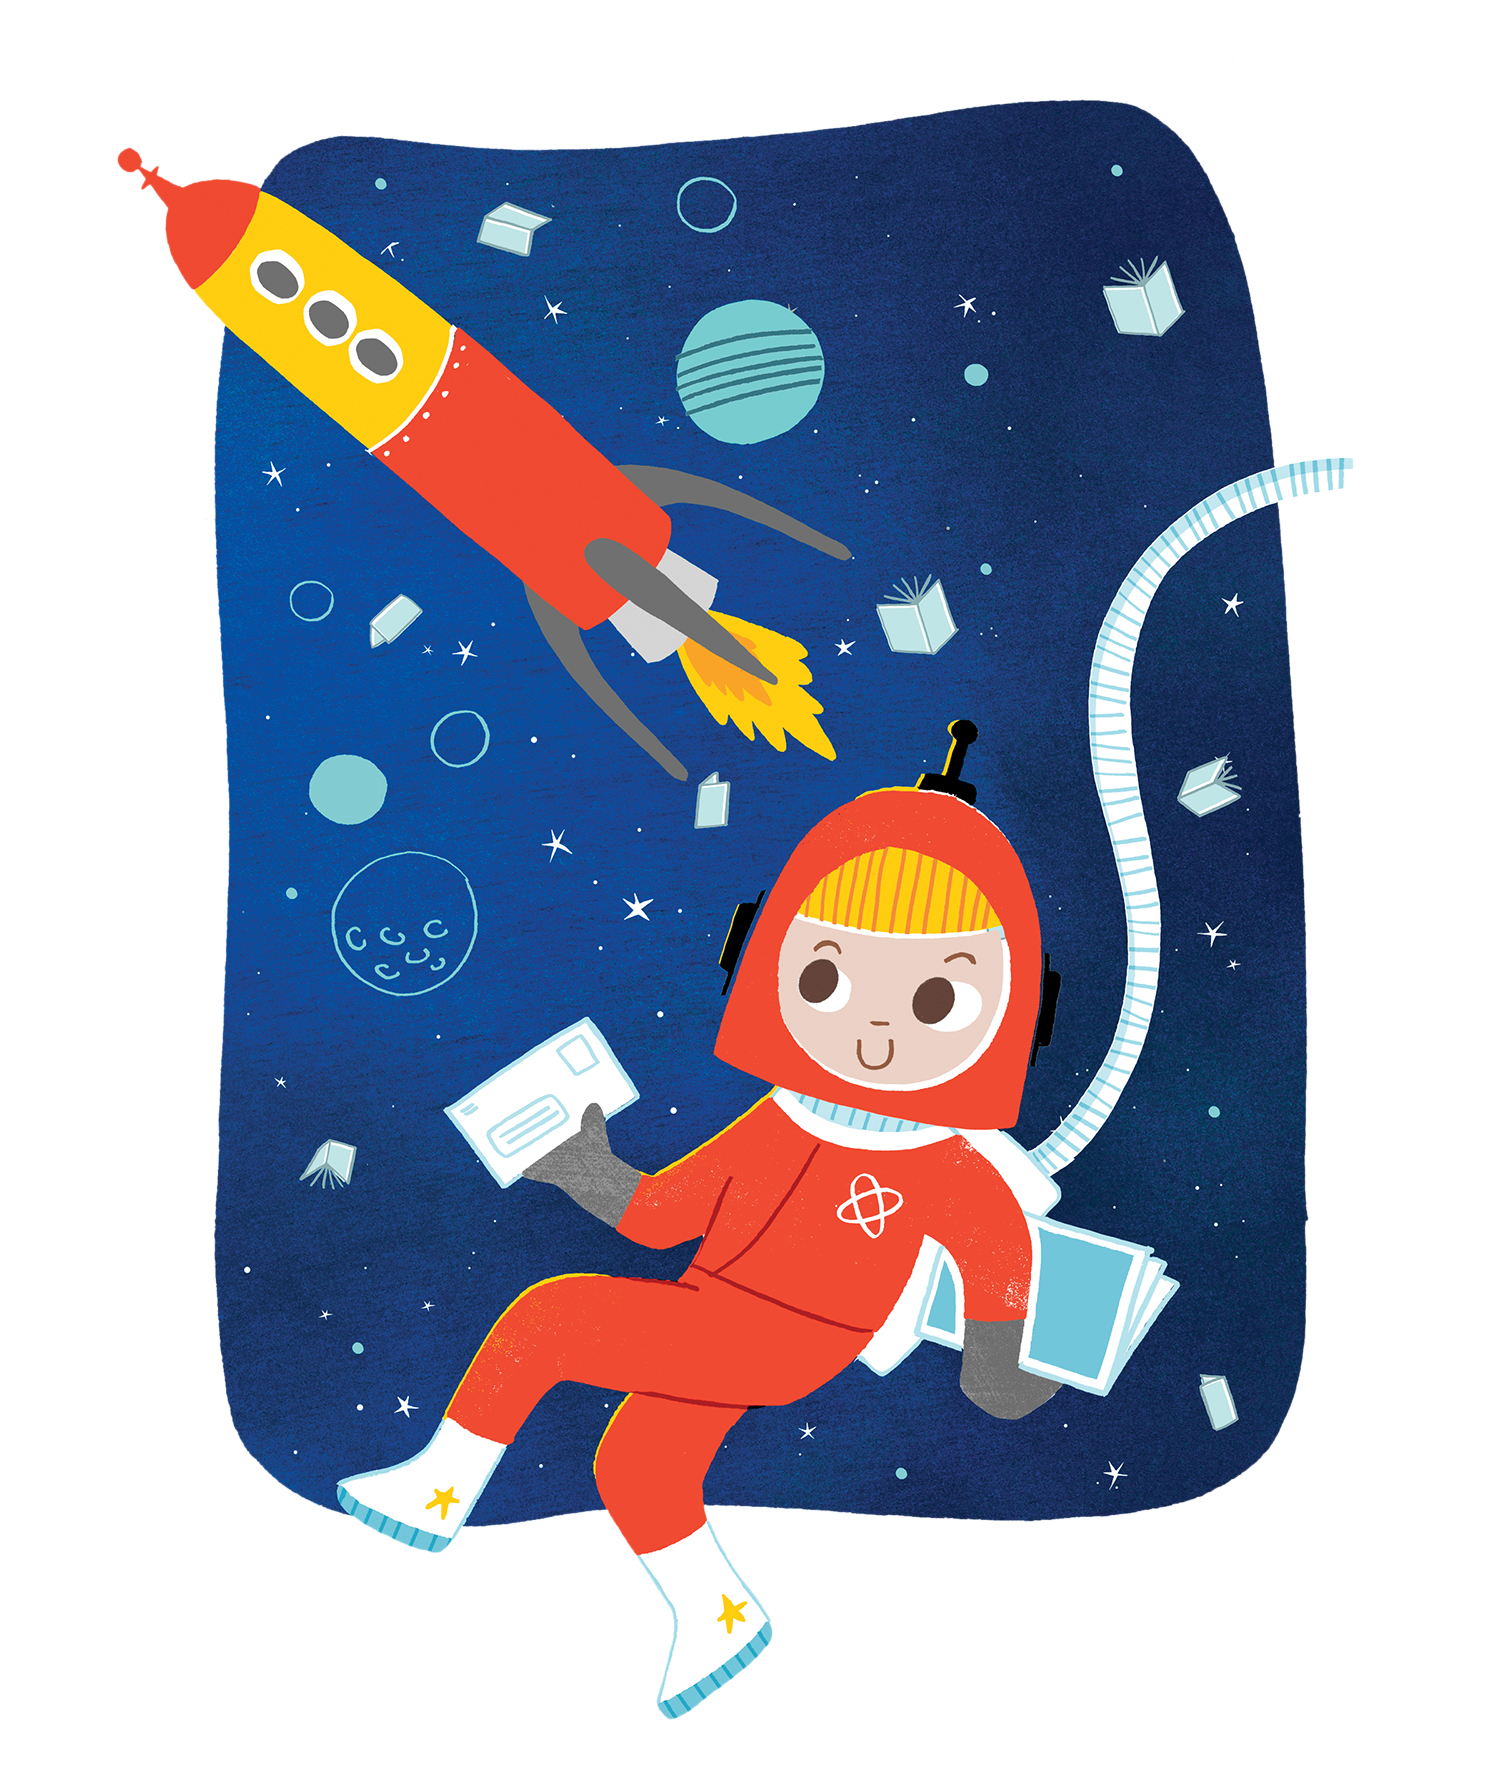 Drawing of child in space